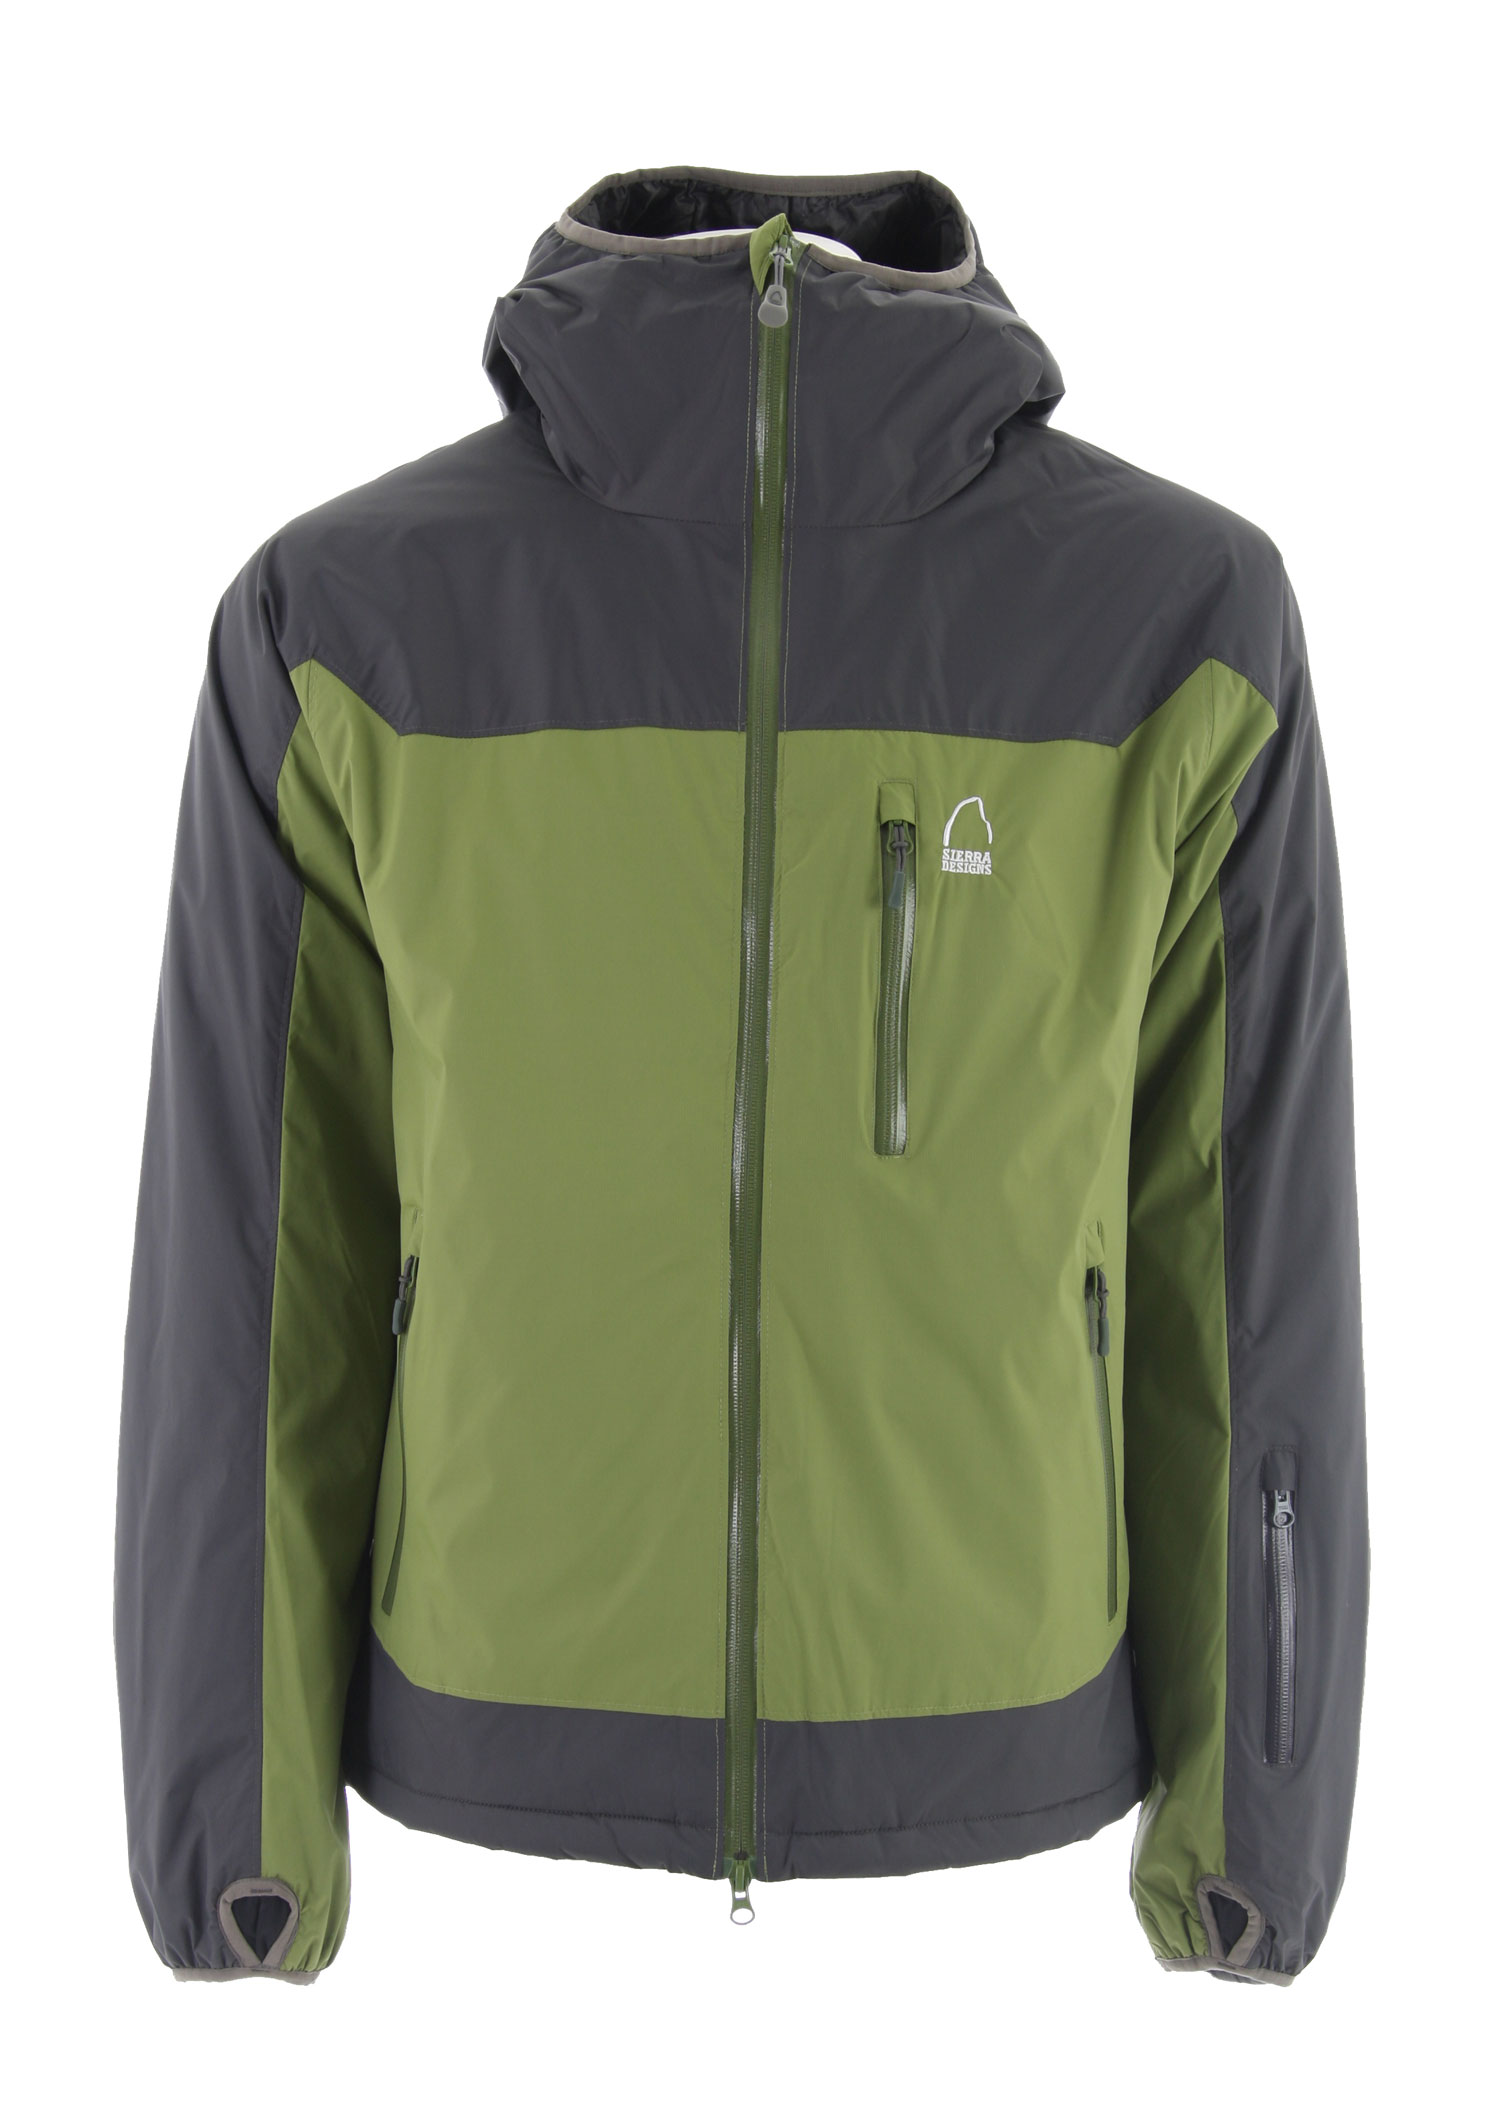 "The durable waterproof shell with a lightly insulated lining. Offering a built-in extra layer, the Sierra Designs Chockstone Insulated Shell Jackets provide an extra layer of warmth while remaining breathable to keep from over heating.Key Features of the Sierra Designs Chockstone Insltd Shell Jacket: 10,000mm Waterproof 6,000g Breathability 100g Primaloft Eco in Body and 60g Primaloft Eco in Sleeves 100% Polyester Taffeta Lining 1 Interior Zippered Pocket and 2 Interior Dump Pockets Interior Tricot Chin Guard Center Front Storm Flap Exposed Waterproof Zippers Condor Construction Helmet Compatible, Adjustable, Elasticized Hood Adjustable Hem Elasticized Cuff with Thumbhole Center Back Length: 31 3/8"" (L) Weight: 30oz Tropozone 2L 100% Nylon Ripstop,55g/m2, 40D, solvent free lamination - $79.95"